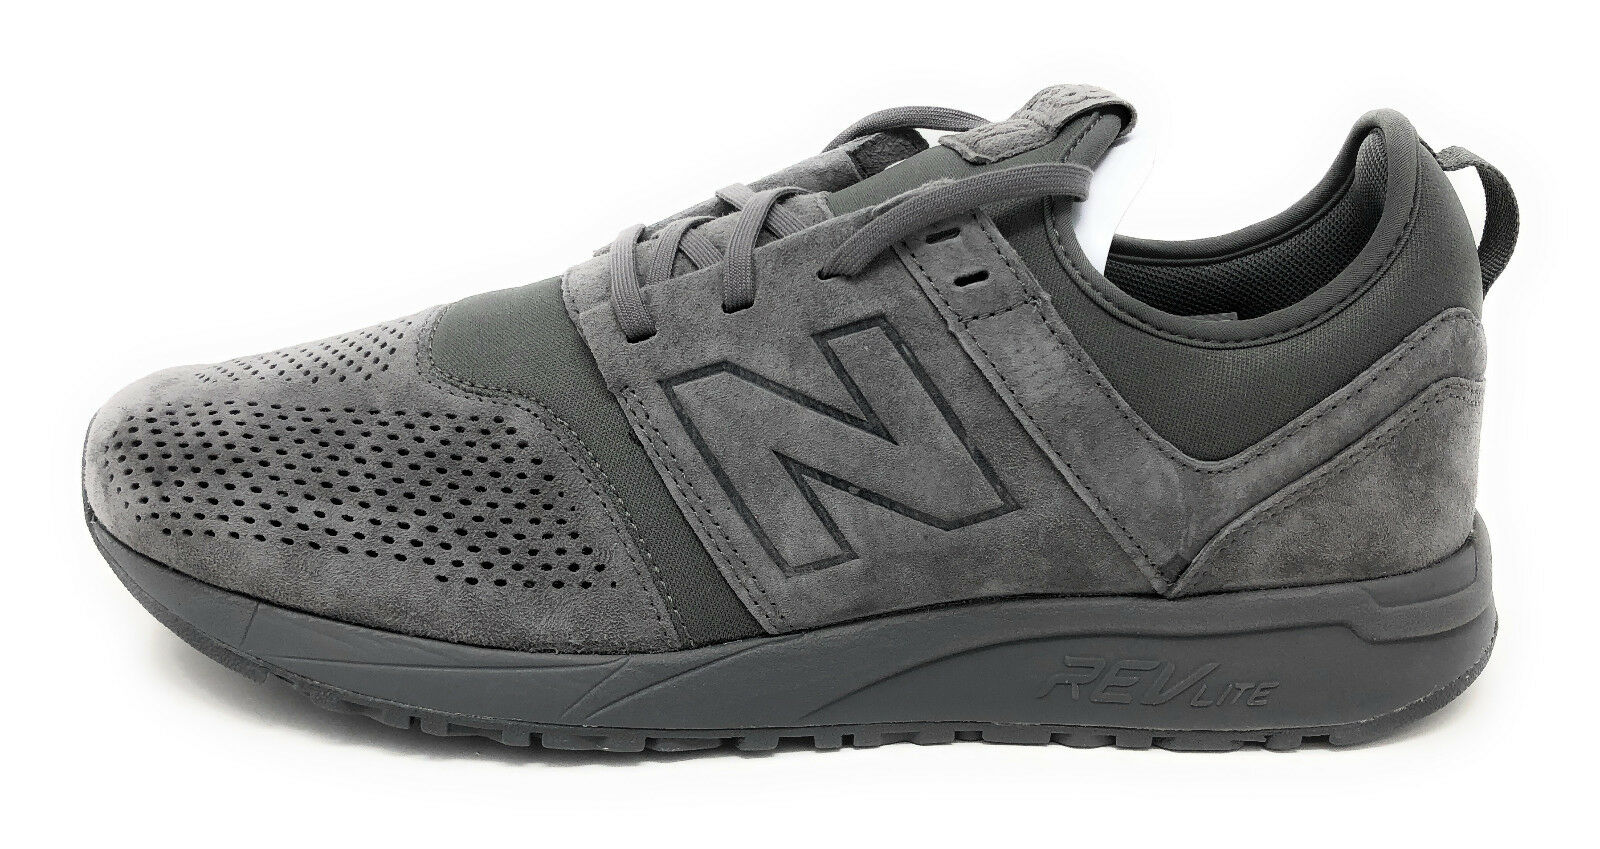 New Balance Men's 247v1 Sneaker, Grey, 9.5 D US